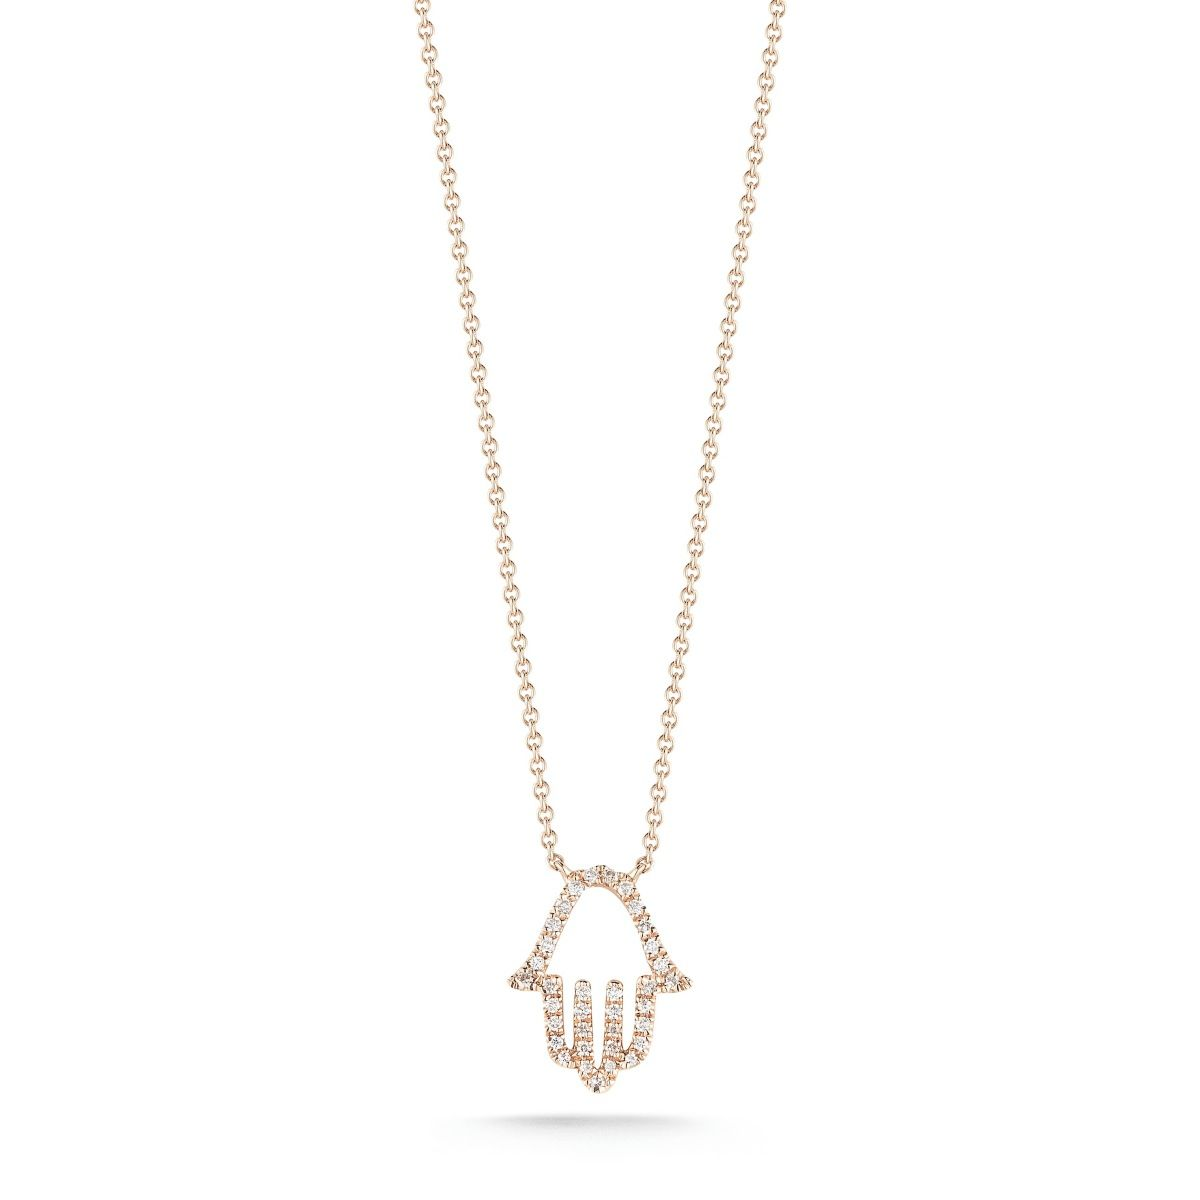 Solid Pave Hamsa Necklace Jewelry for Women YCN6891